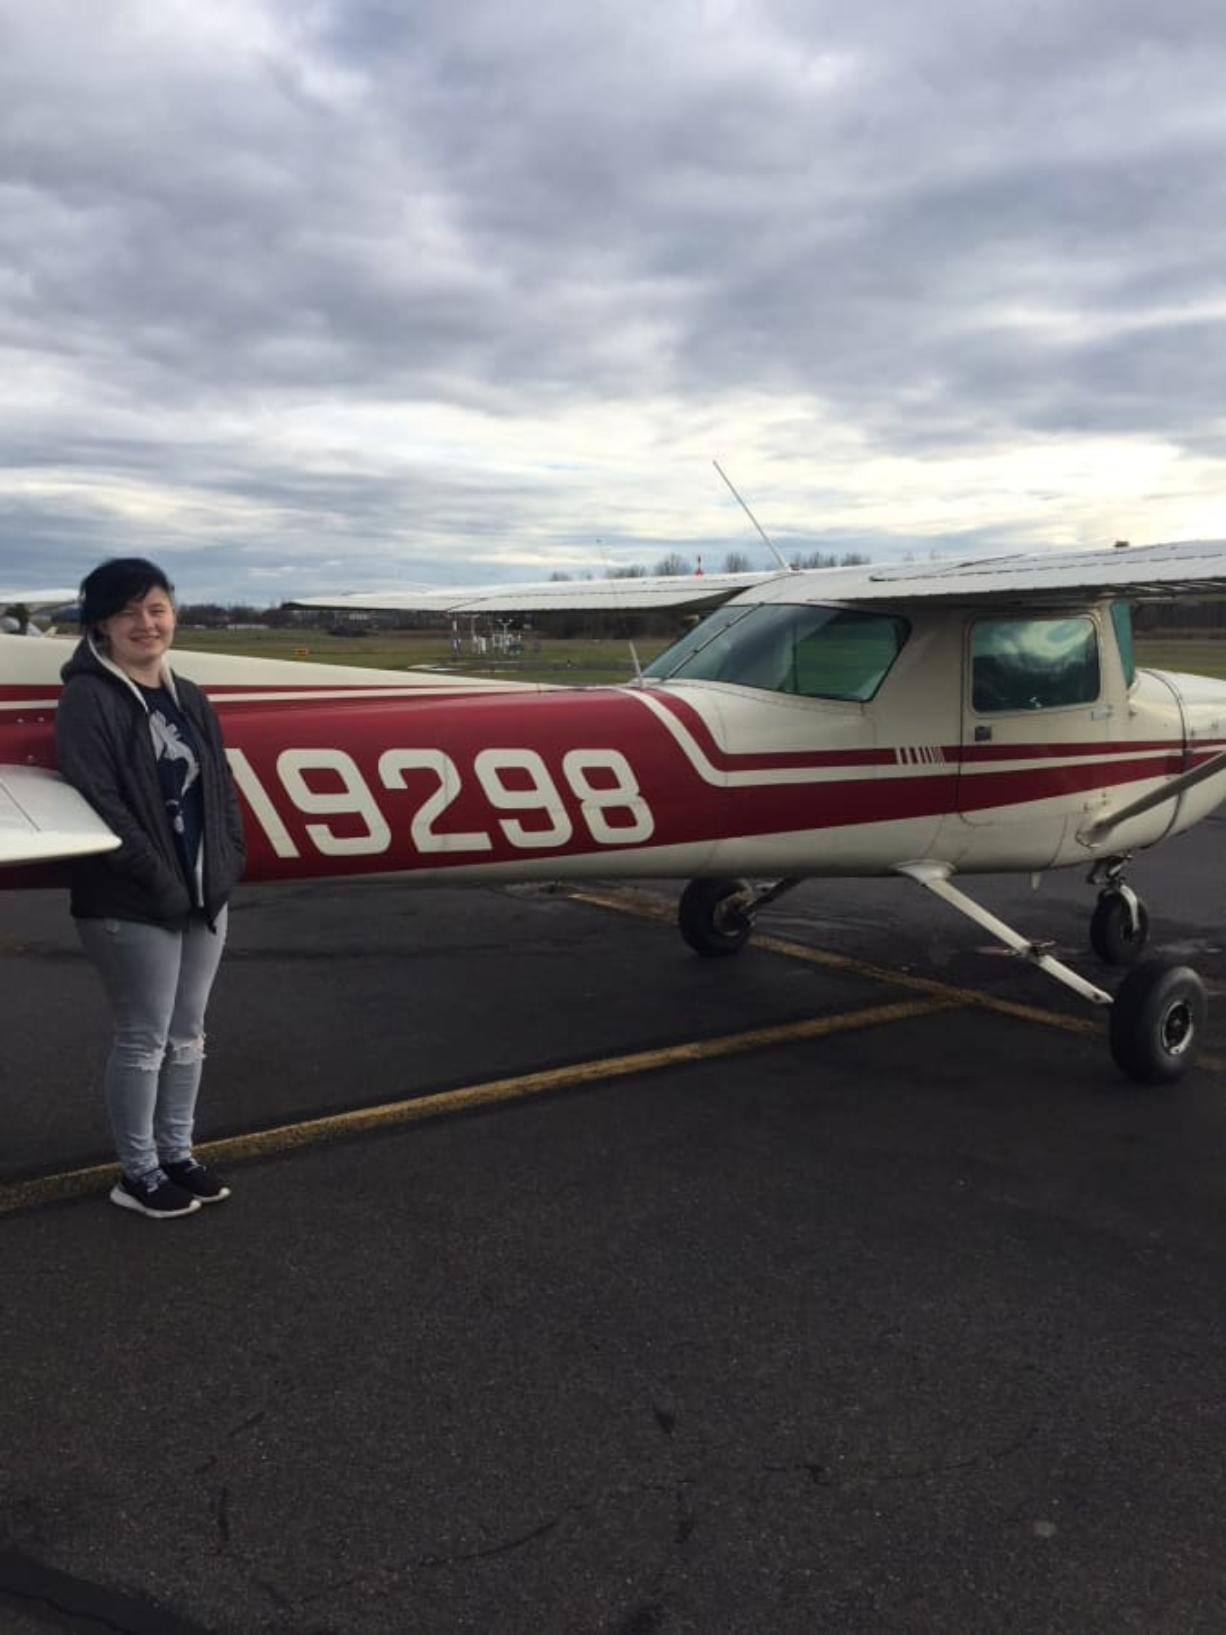 Pleasant Valley: Rachel Friesen earned her private pilot's license after passing her exams on Dec. 30 at age 17, the youngest someone can obtain their license through the Federal Aviation Administration.